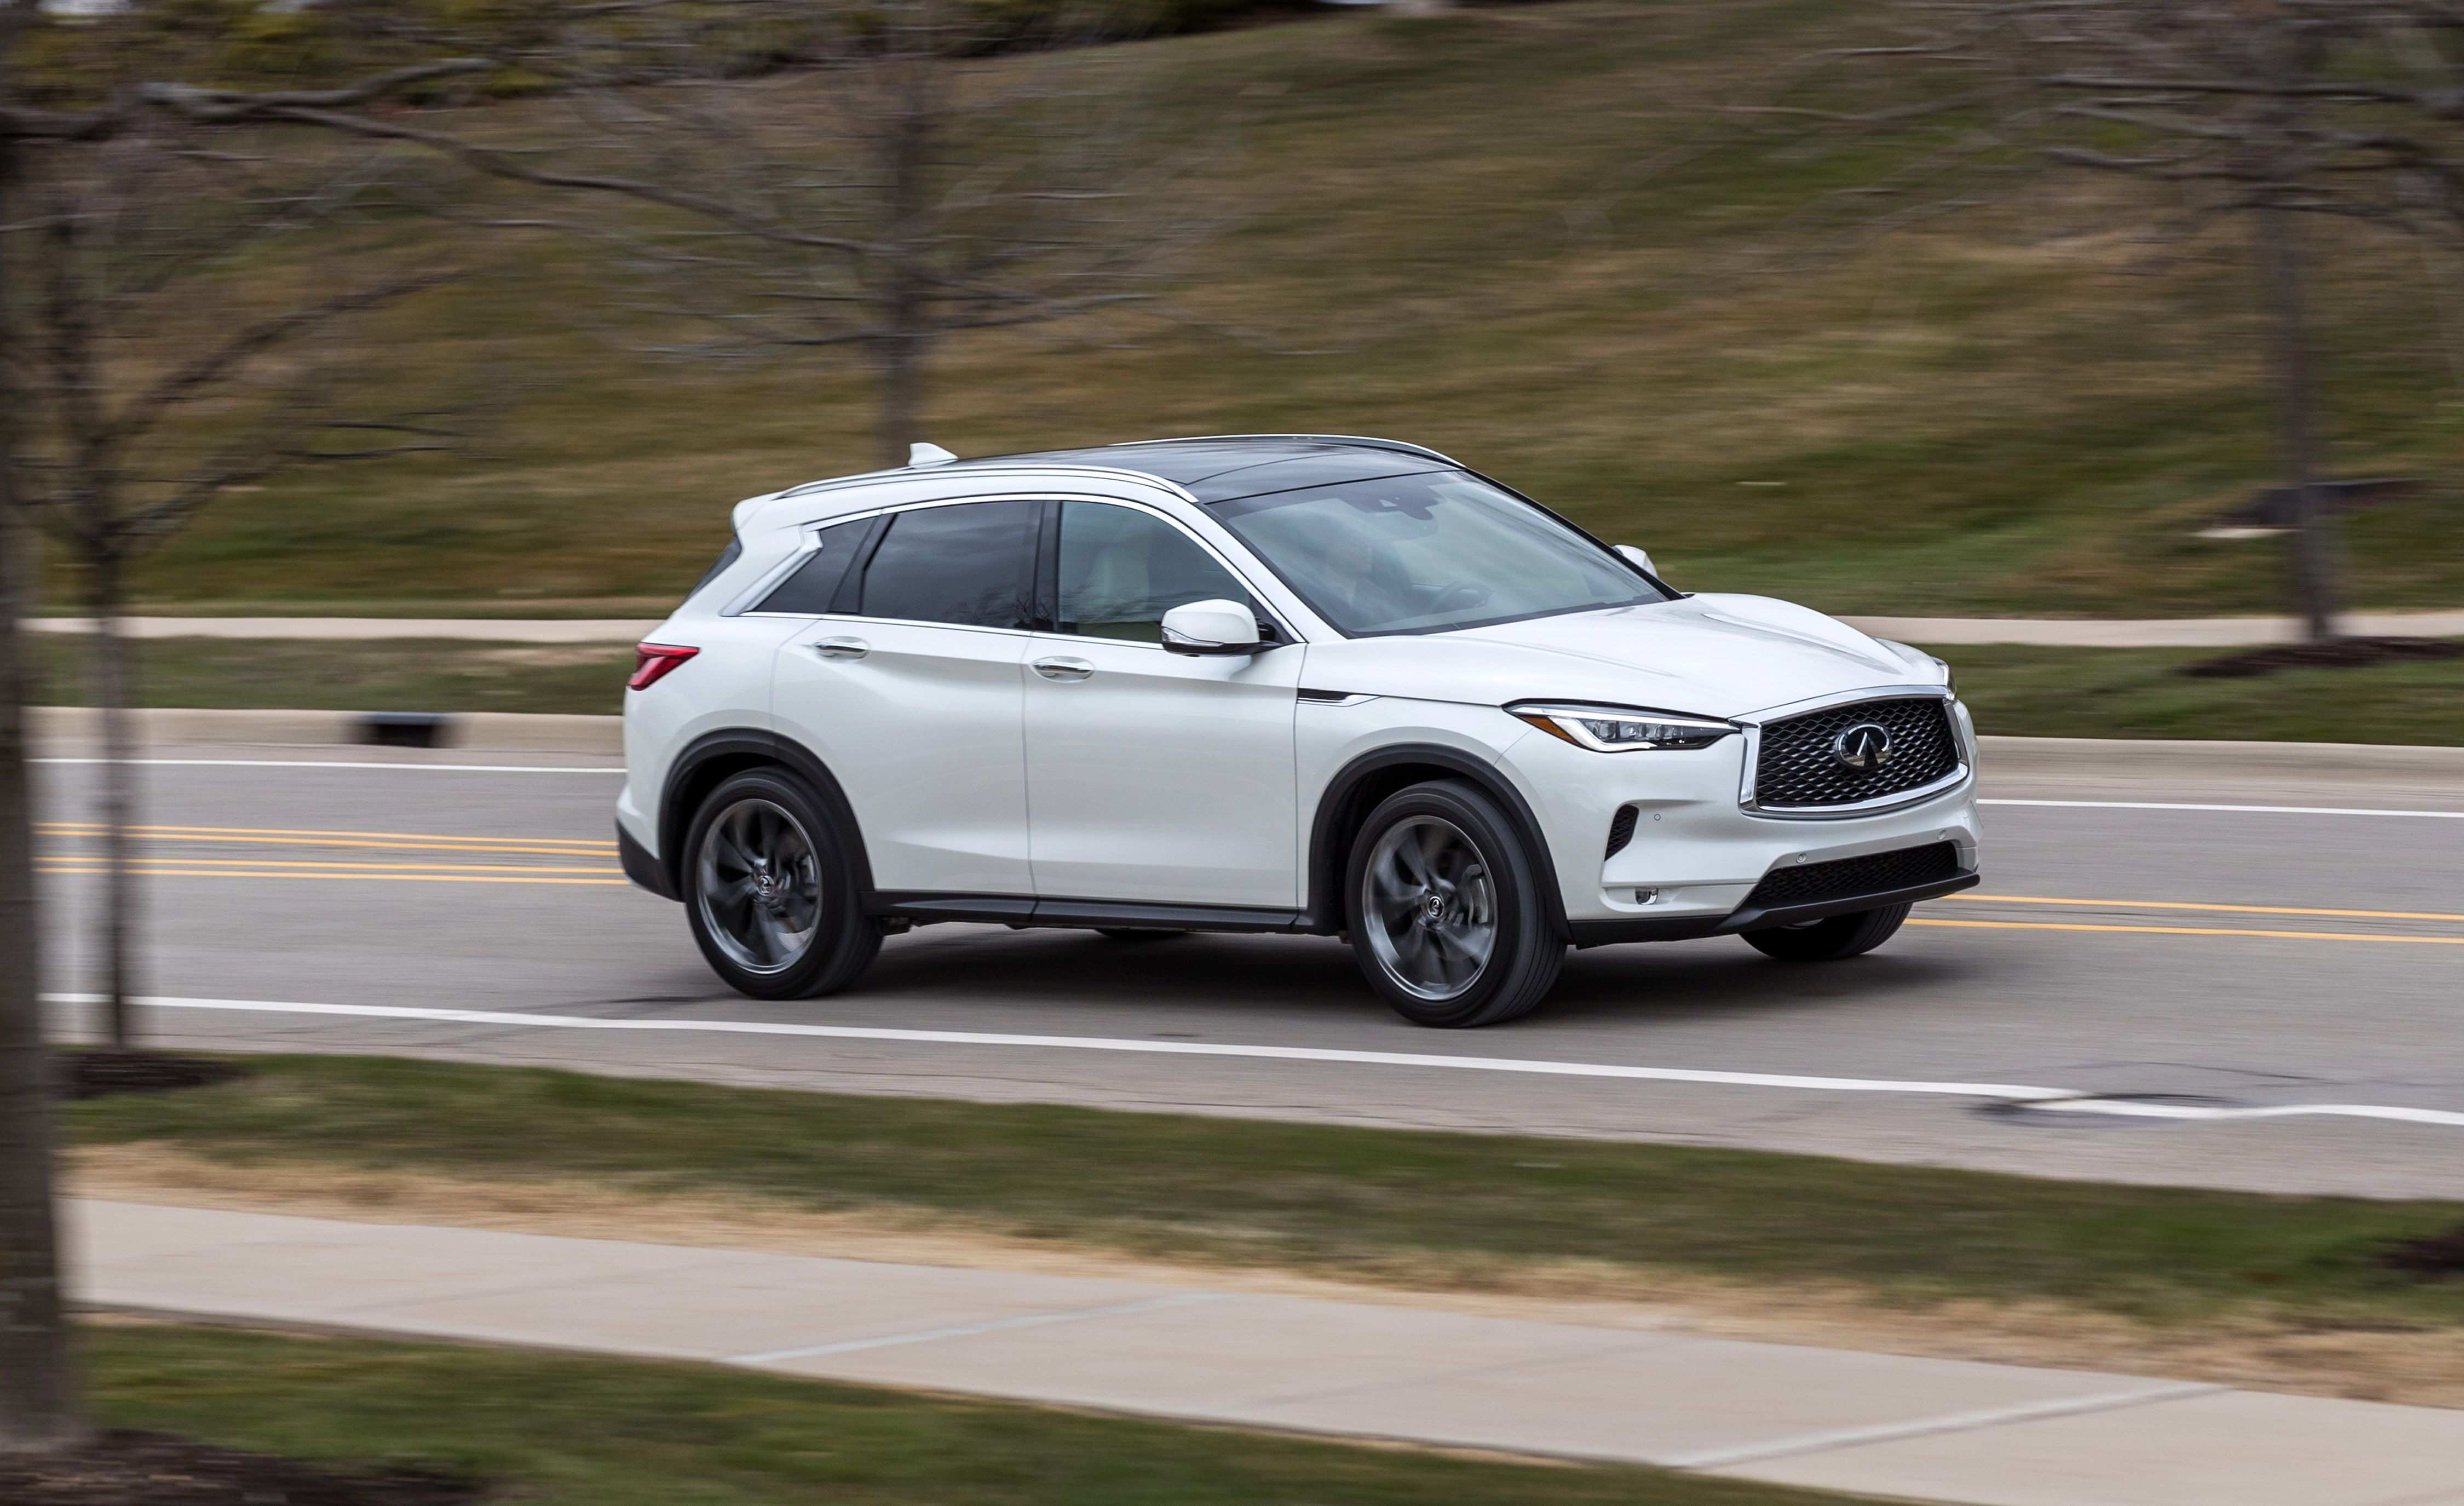 17 Concept of 2019 Infiniti Qx50 Spy Shoot with 2019 Infiniti Qx50